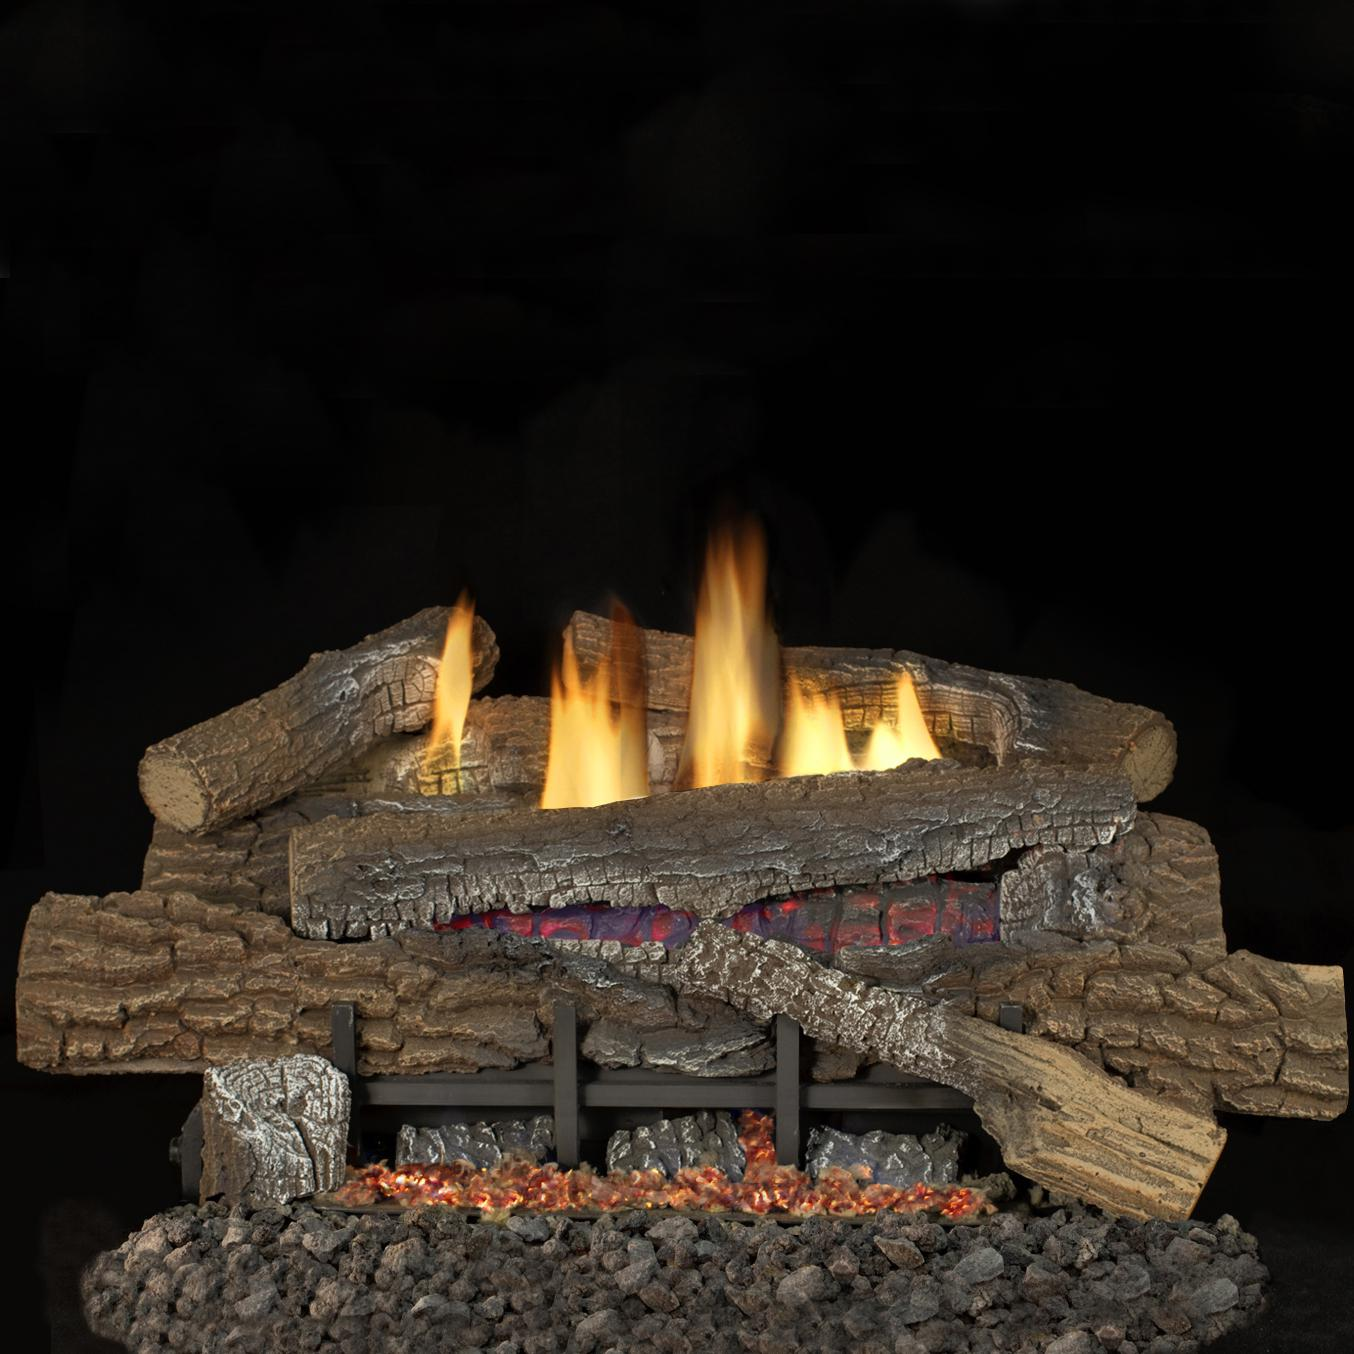 Lowes Gas Log Fireplace Inserts Gas Log Lowes Gas Log Inserts